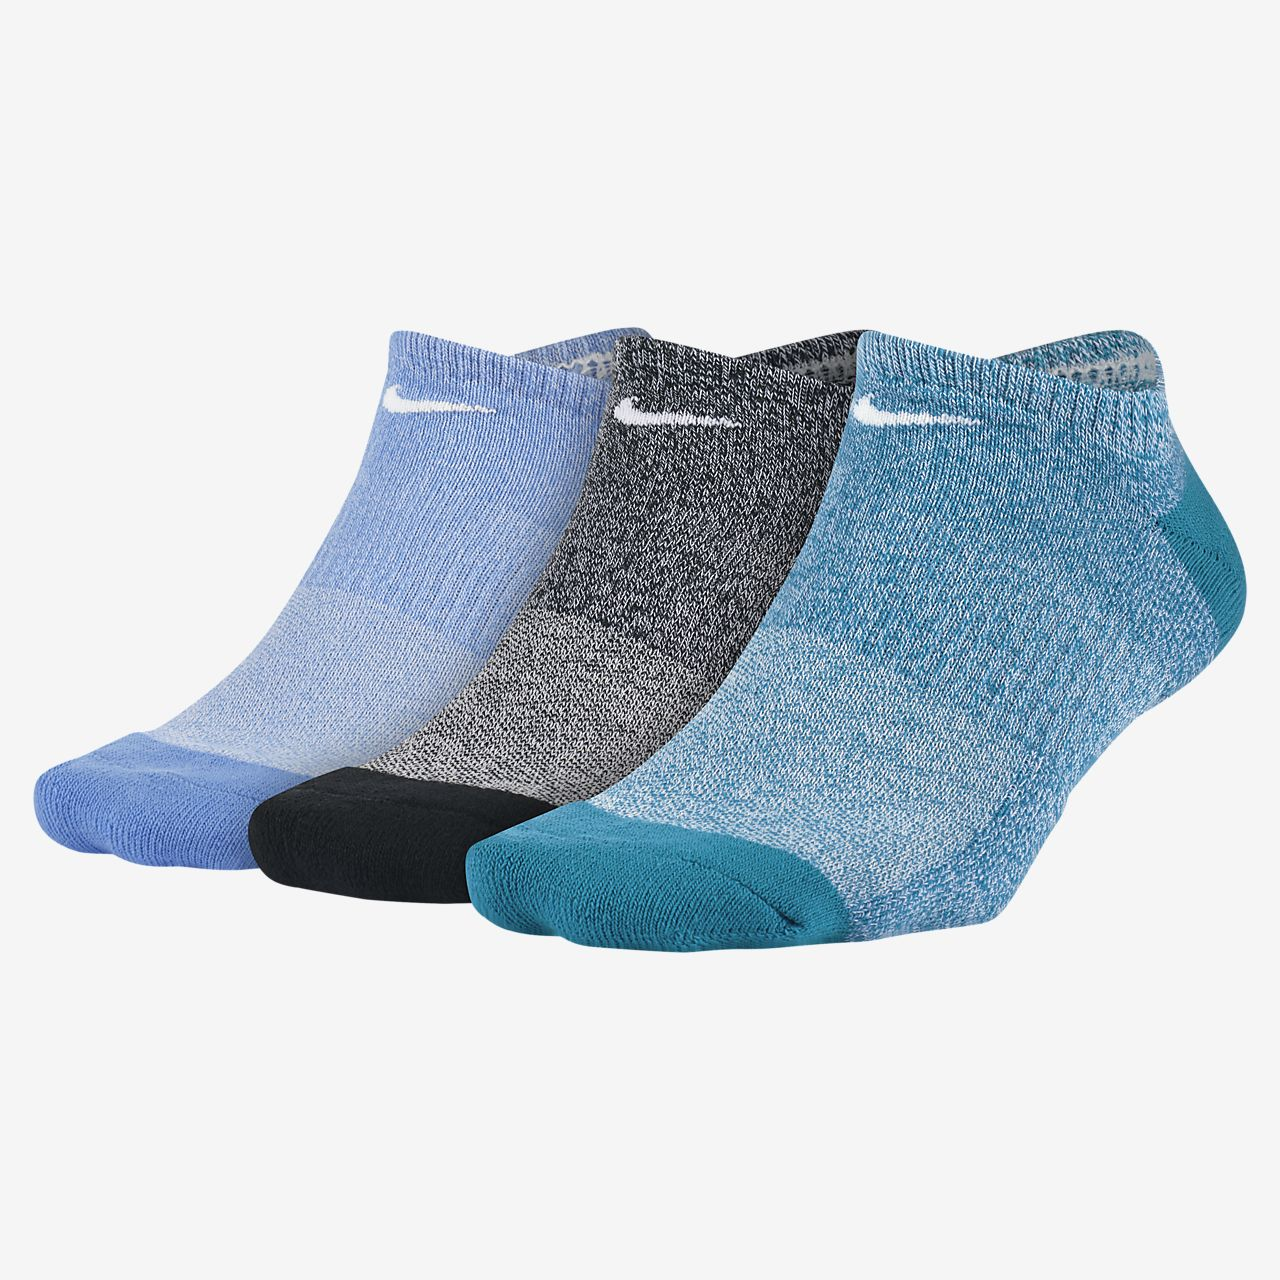 Nike Everyday Cushioned 隱形襪 (3 雙)